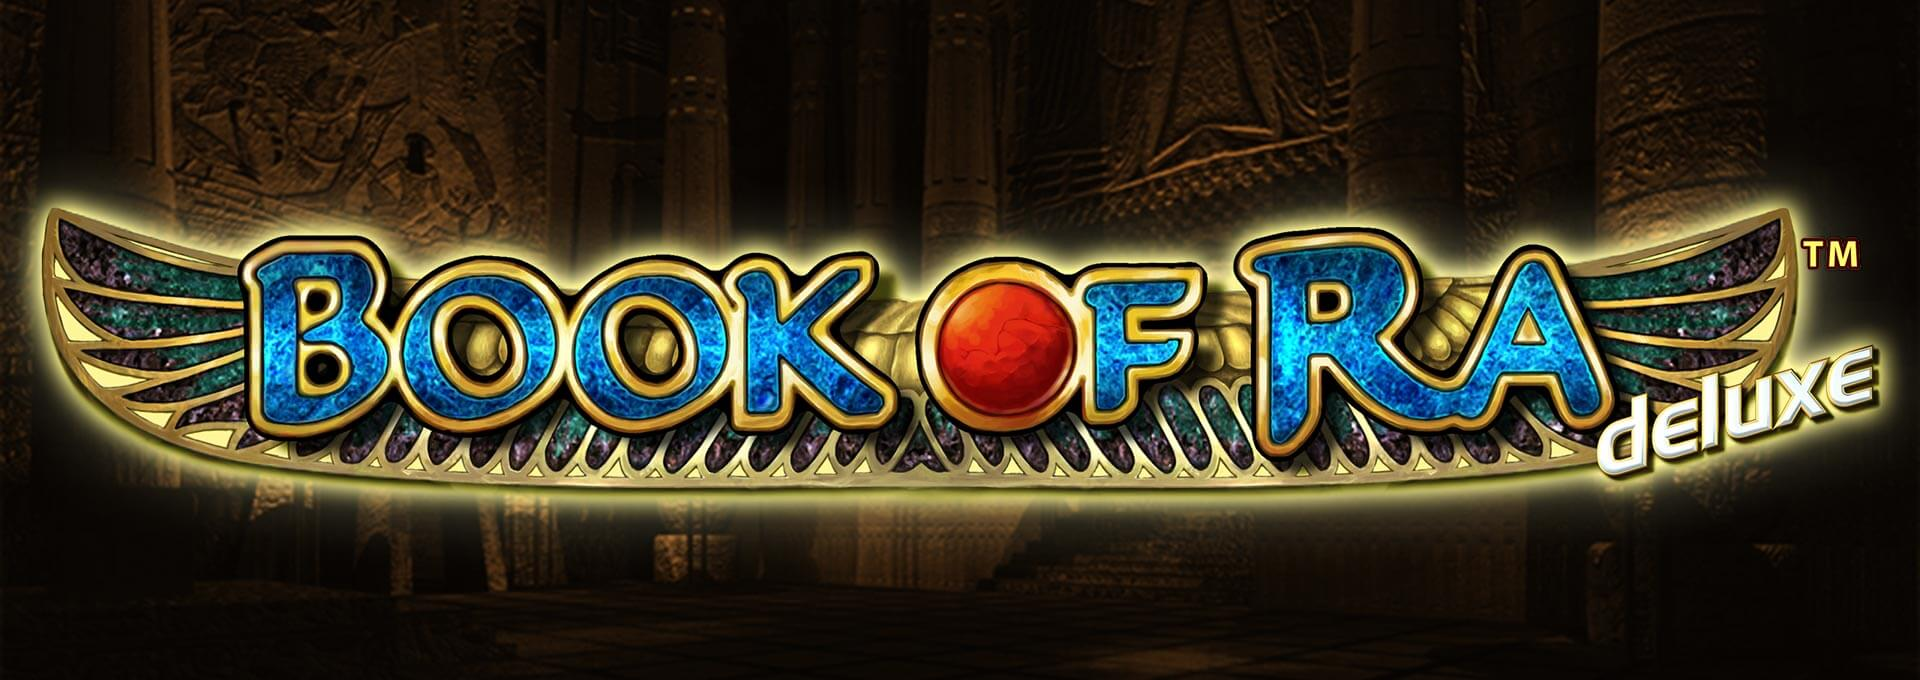 casino online roulette free slot games book of ra